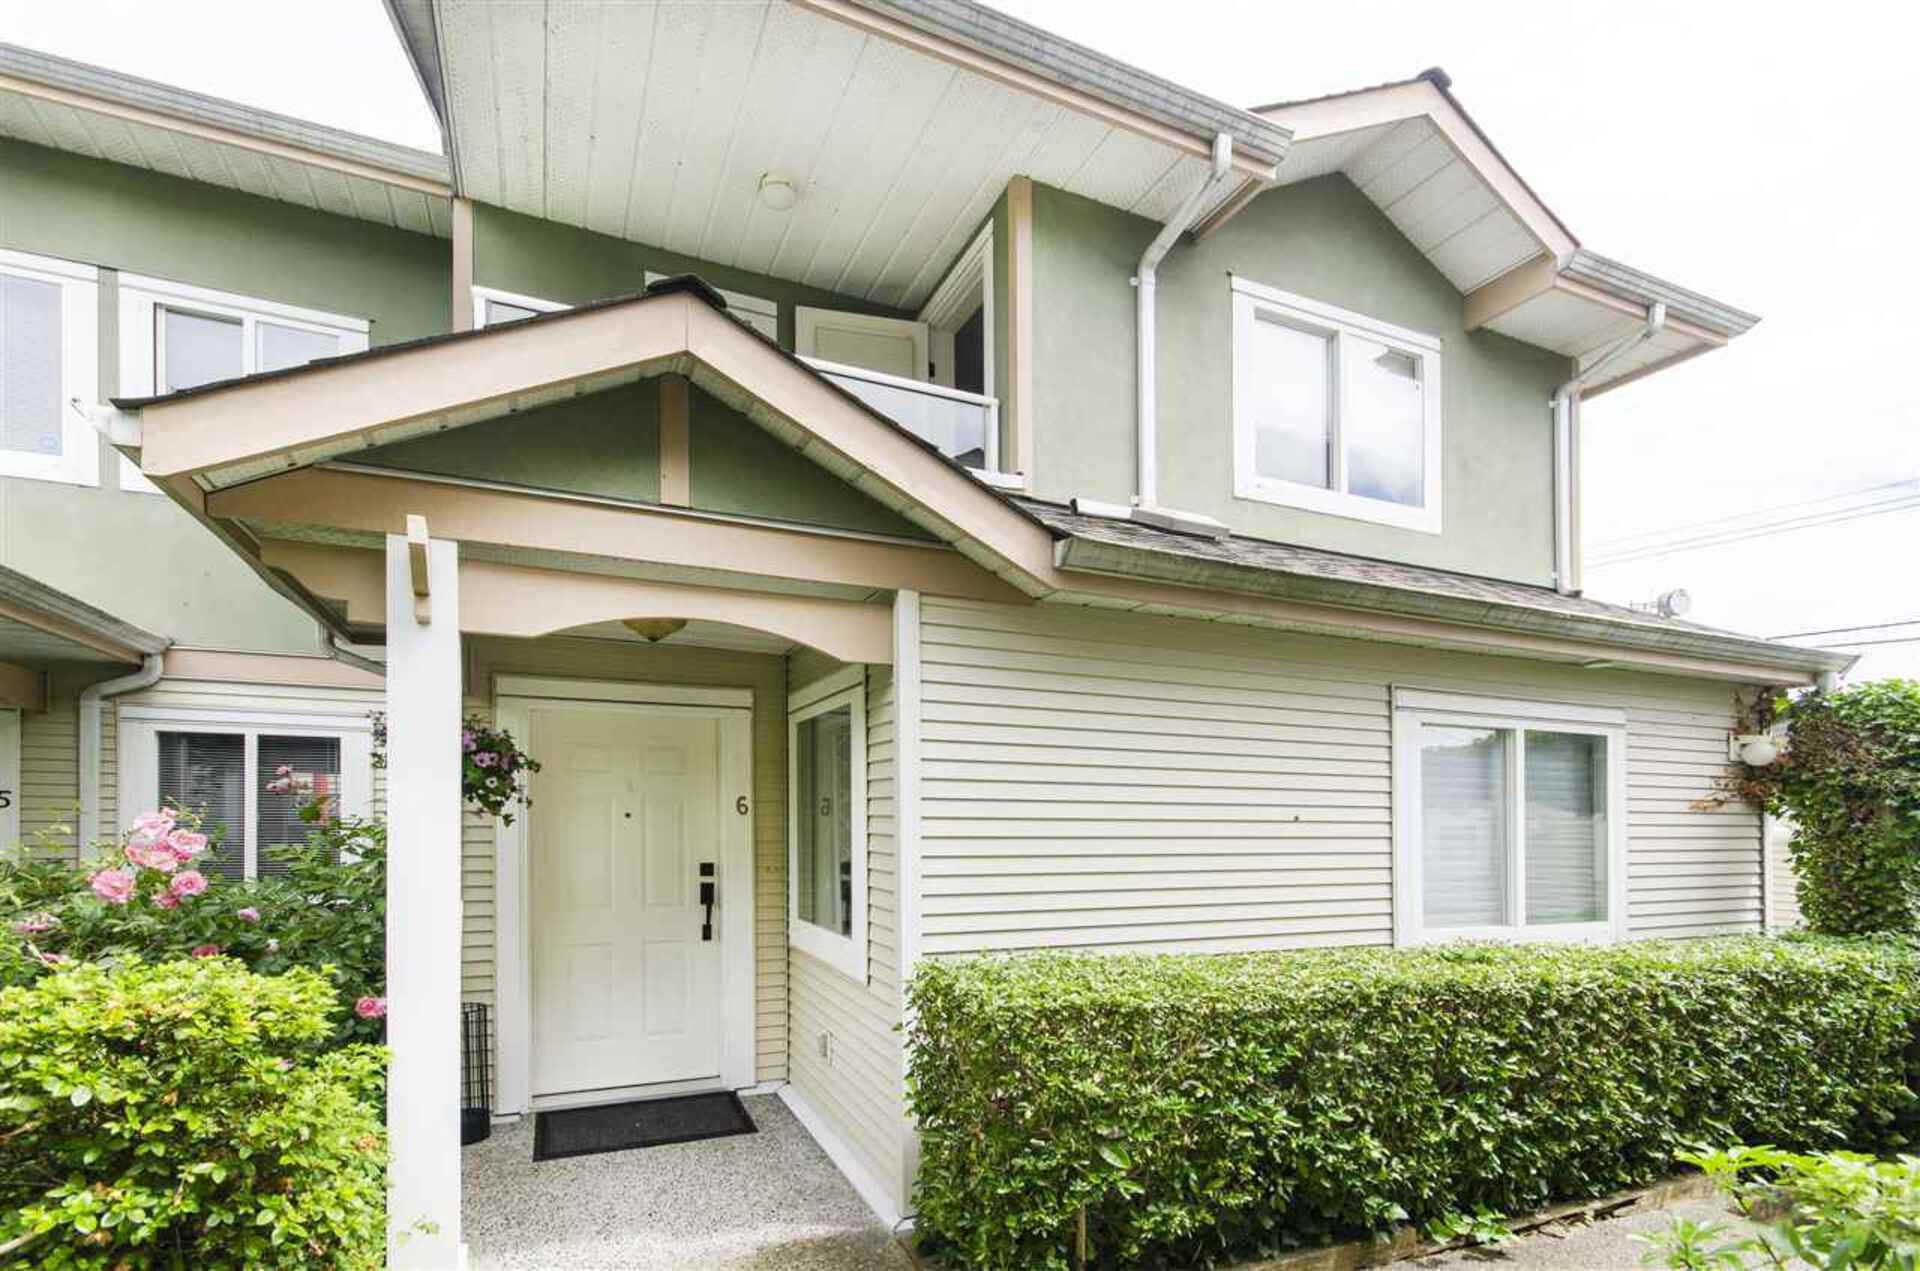 1233-w-16th-street-norgate-north-vancouver-25-1 at 6 - 1233 W 16th Street, Norgate, North Vancouver